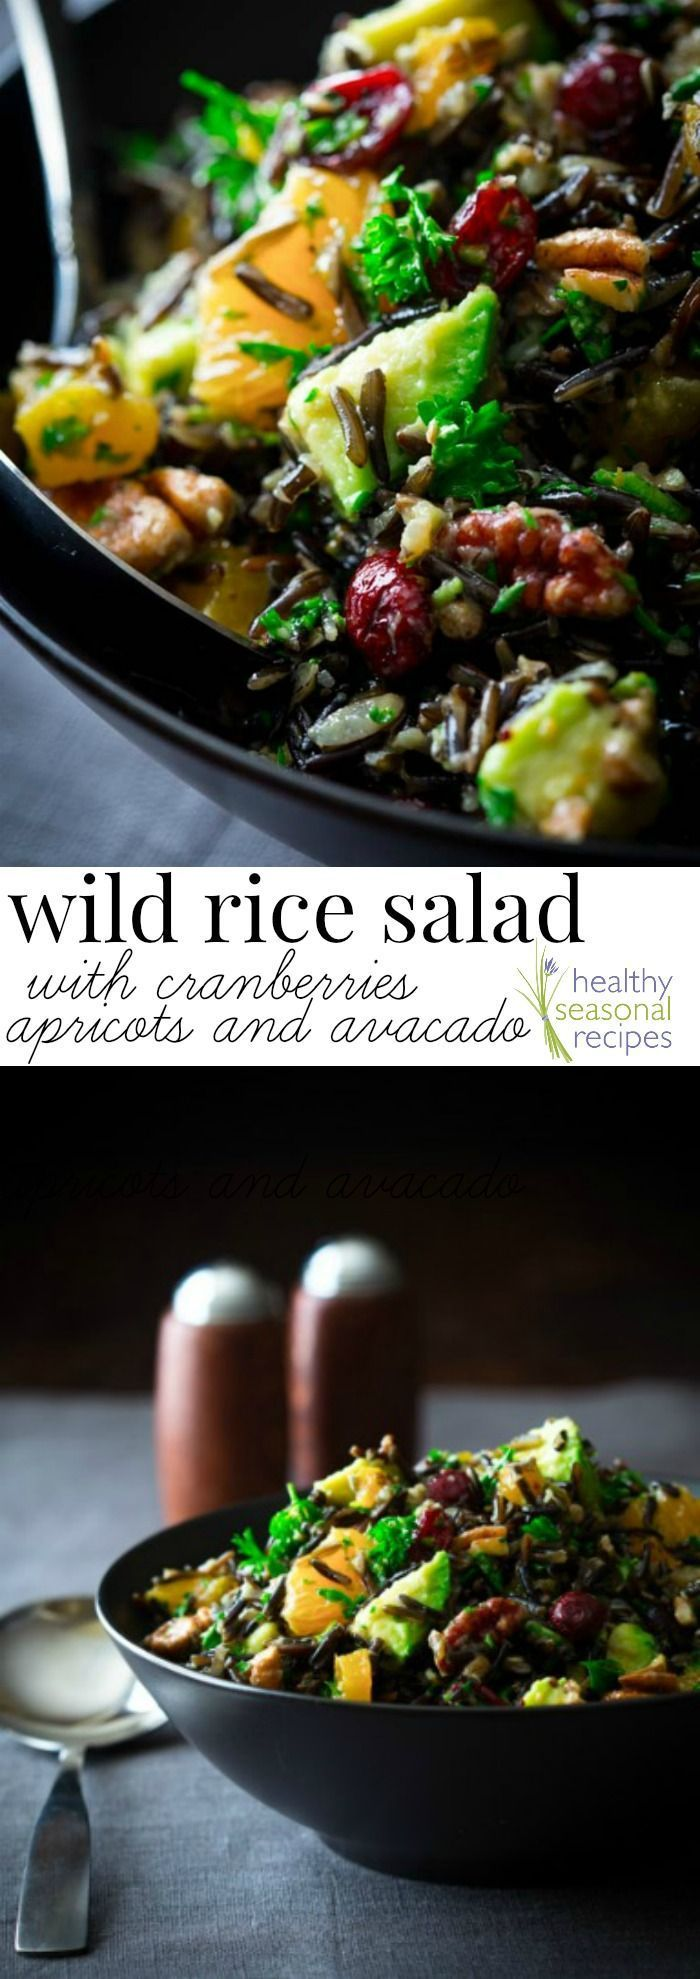 Blog post at Healthy Seasonal Recipes : Wild rice salad recipe with tangerines, dried cranberries, apricots and avocado, inspired by the Silver Palate's Nutted Wild Rice with pecan[..]